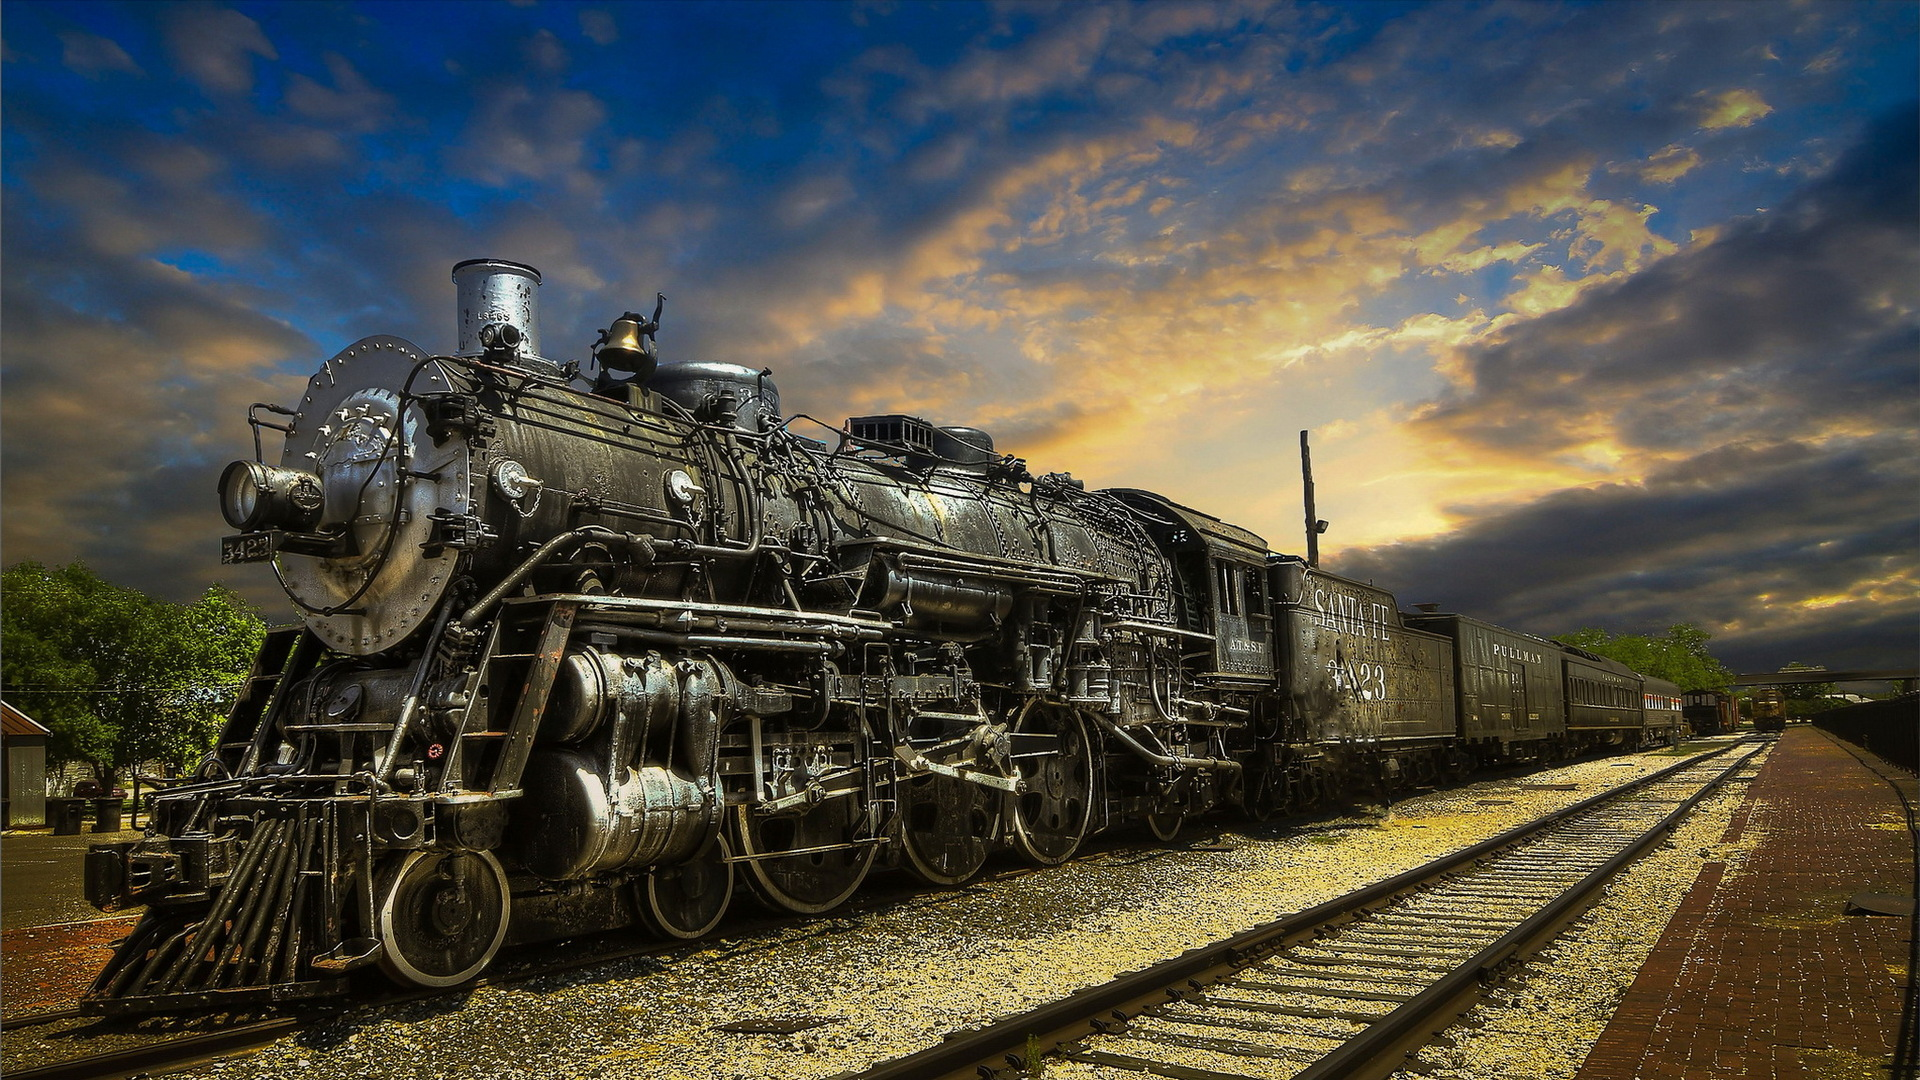 Fantastic Santa Fe Steam Train Hdr Hd Desktop Background HD wallpapers